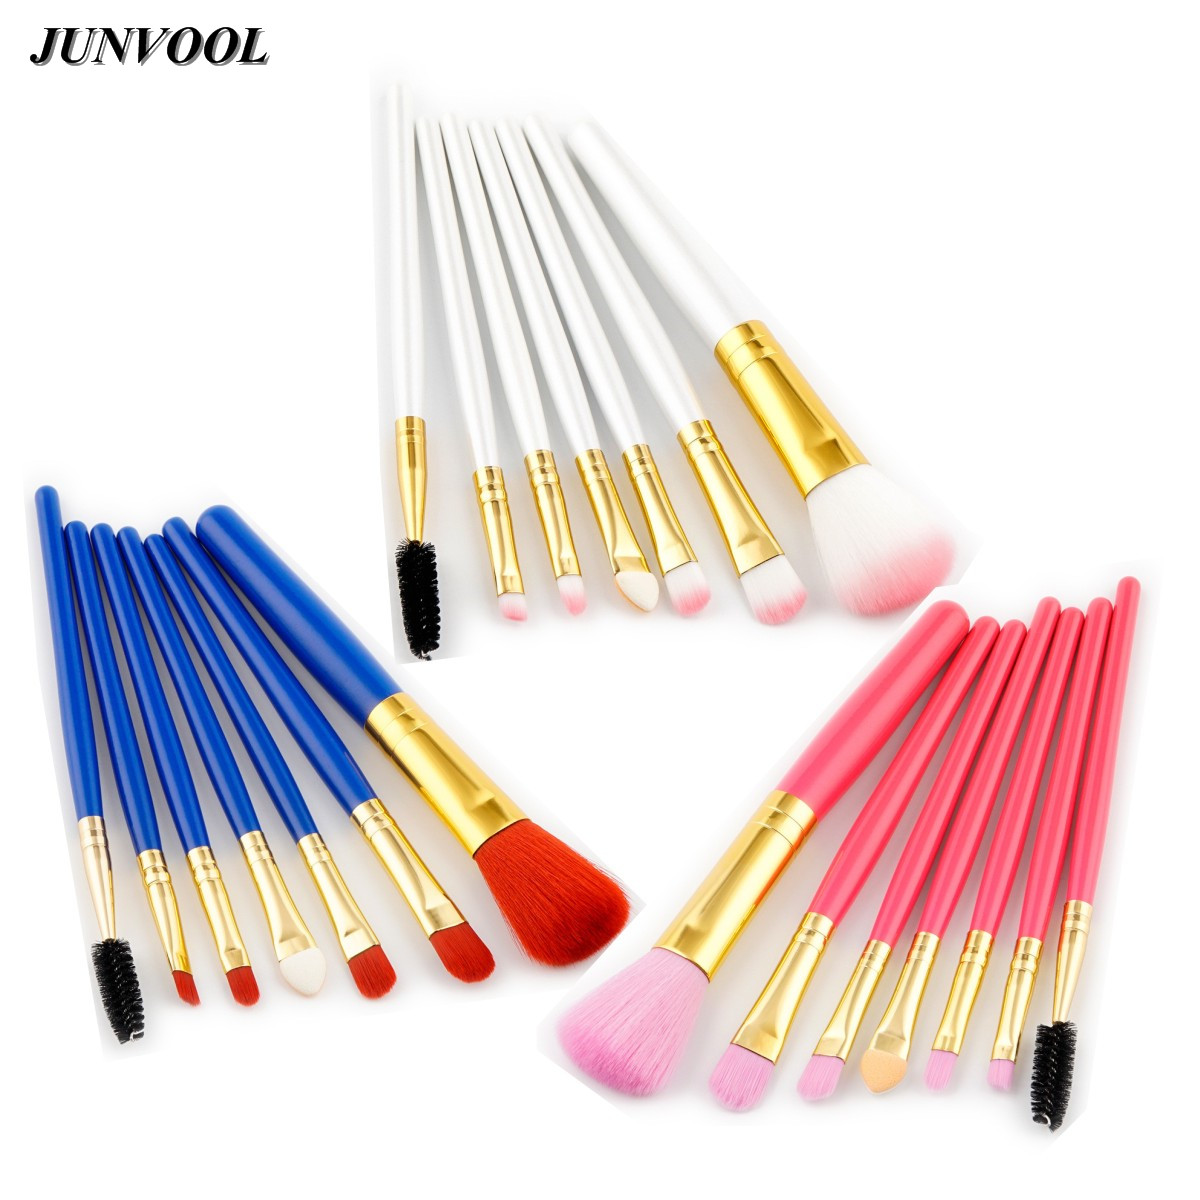 Pro 7 PCS Eyes Makeup Brushes Set Tools Pink Foundation Make Up Toiletry Kit Blue Red Eyebrow Eye Shadow Brush Make Up Blush Set